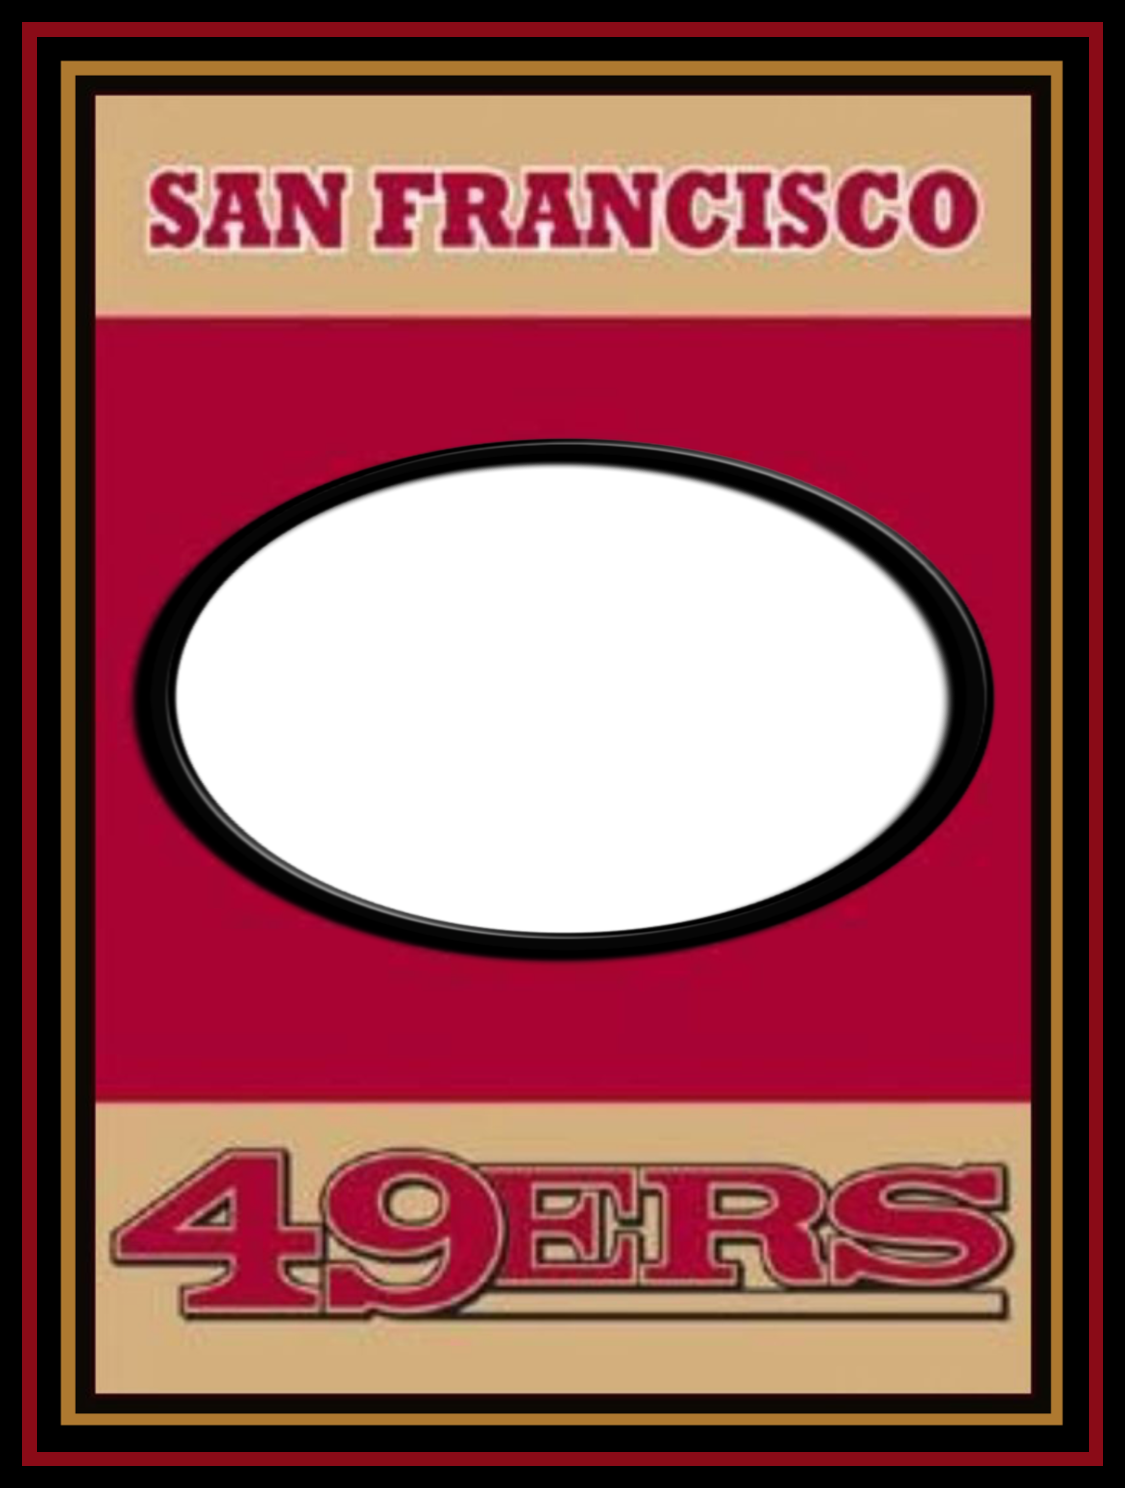 Pin by Maria Veronica Martinez on SF 49ers San francisco